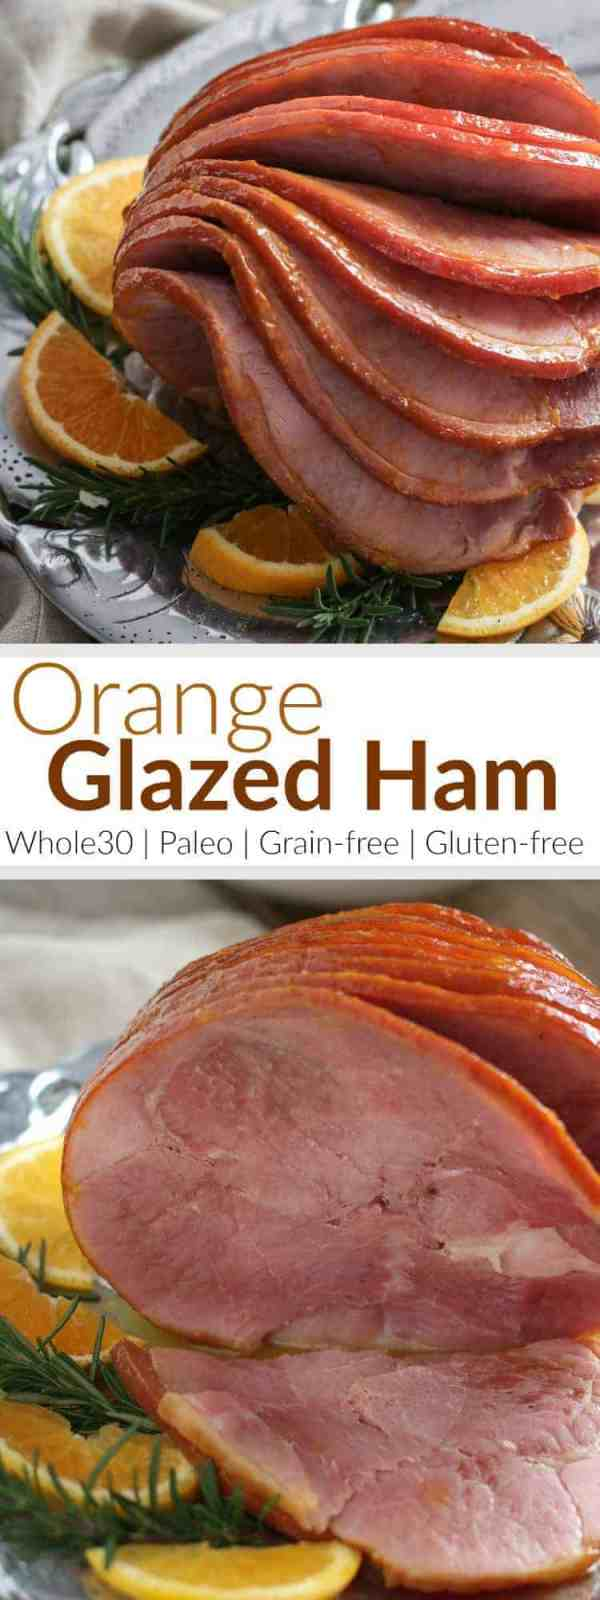 Now you can enjoy perfectly glazed ham without added sugar! Our baked ham with it's simple 4 ingredient orange and spice glaze is easy enough for a casual weekend dinner or meal prep session and elegant enough for holiday feasts | Whole30 meat recipes | whole30 holiday recipes | paleo meat recipes | paleo holiday recipes | grain-free meat recipes | grain-free holiday recipes | gluten-free meat recipes | gluten-free holiday recipes || The Real Food Dietitians